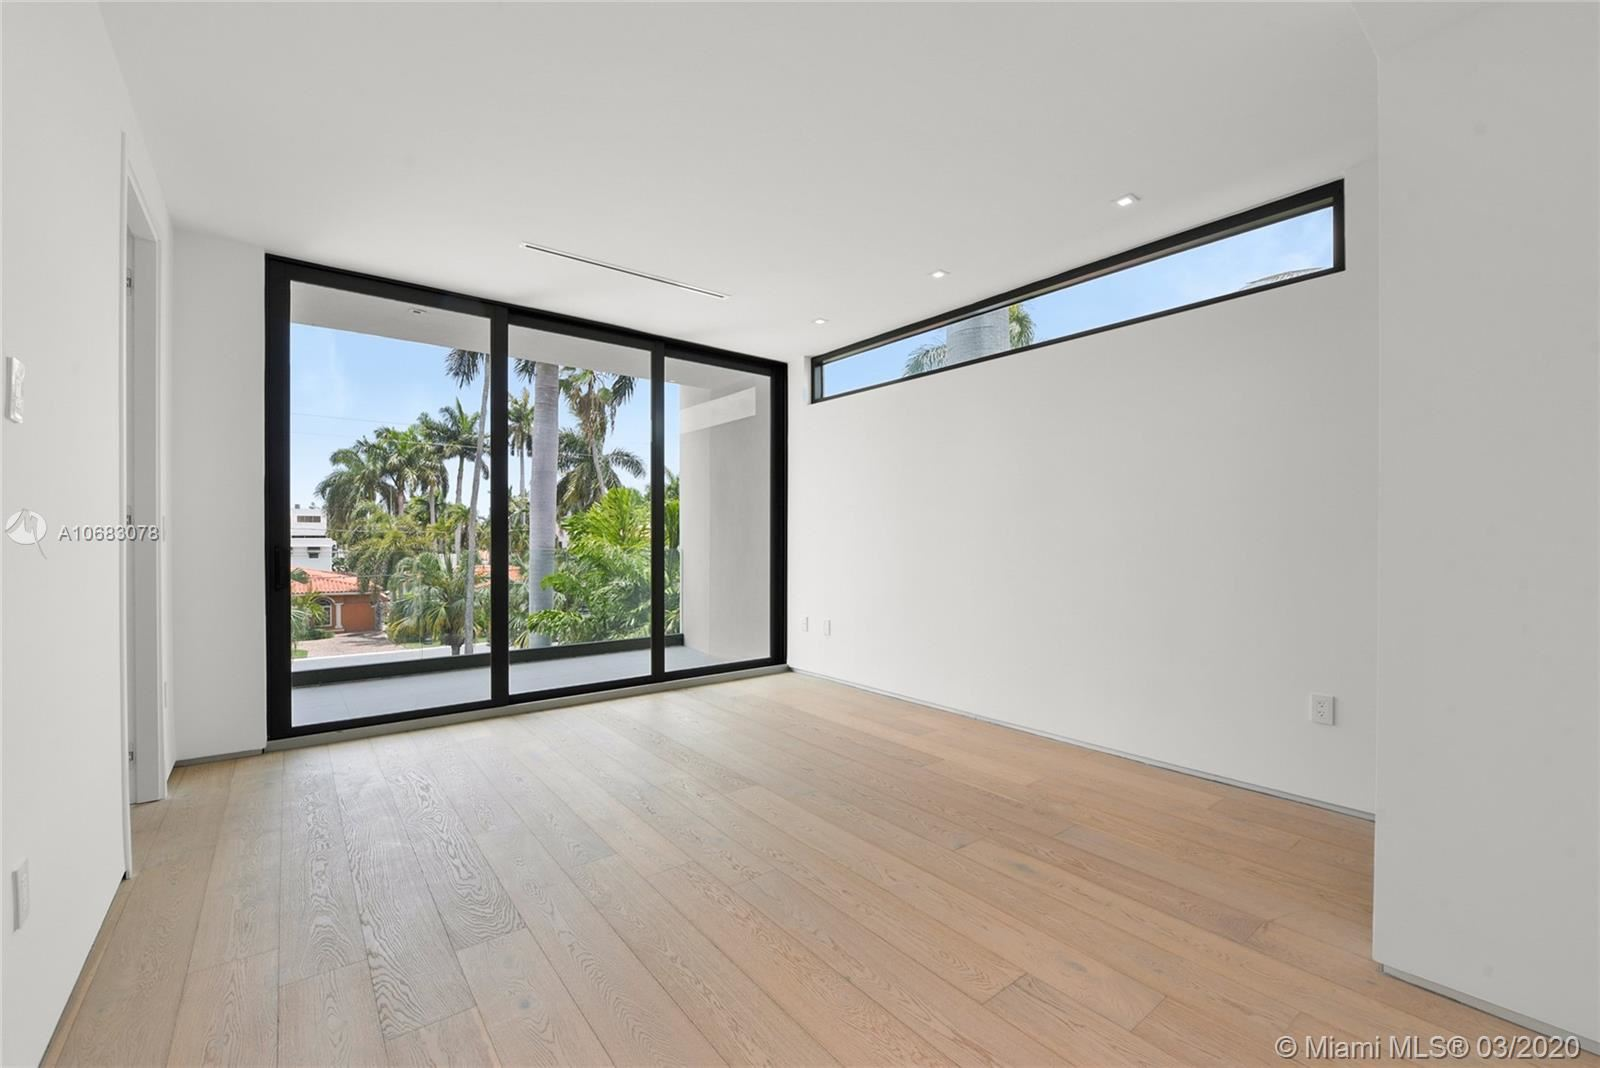 Photo 27 of Listing MLS a10683078 in 272 Palm Ave Miami Beach FL 33139